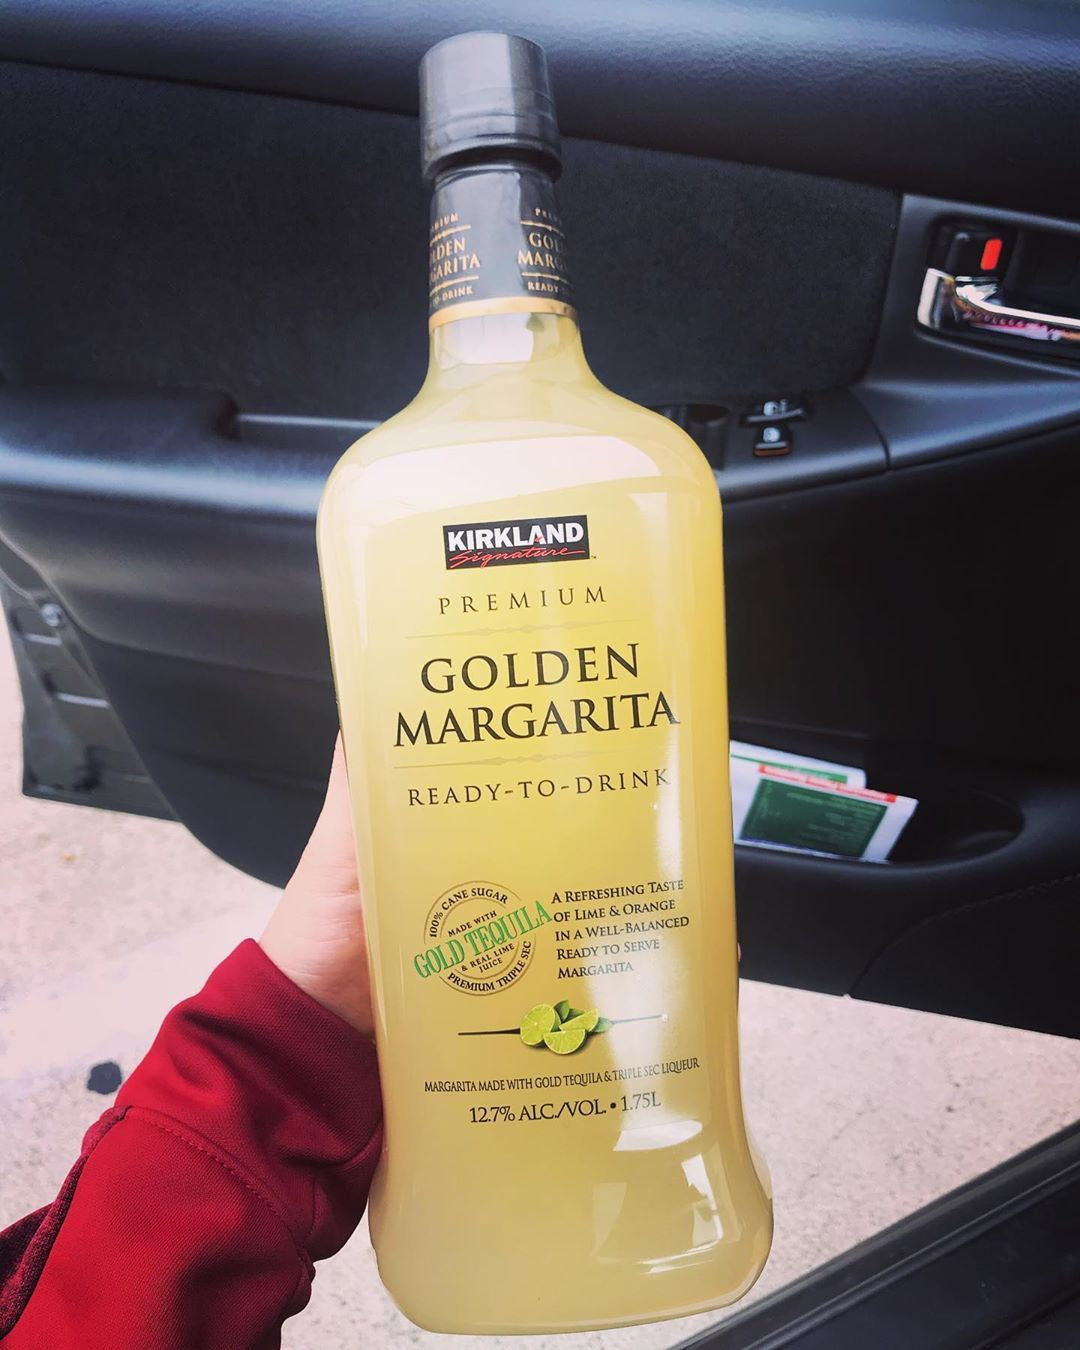 Costco Is Selling A Ready-To-Drink Golden Margarita For